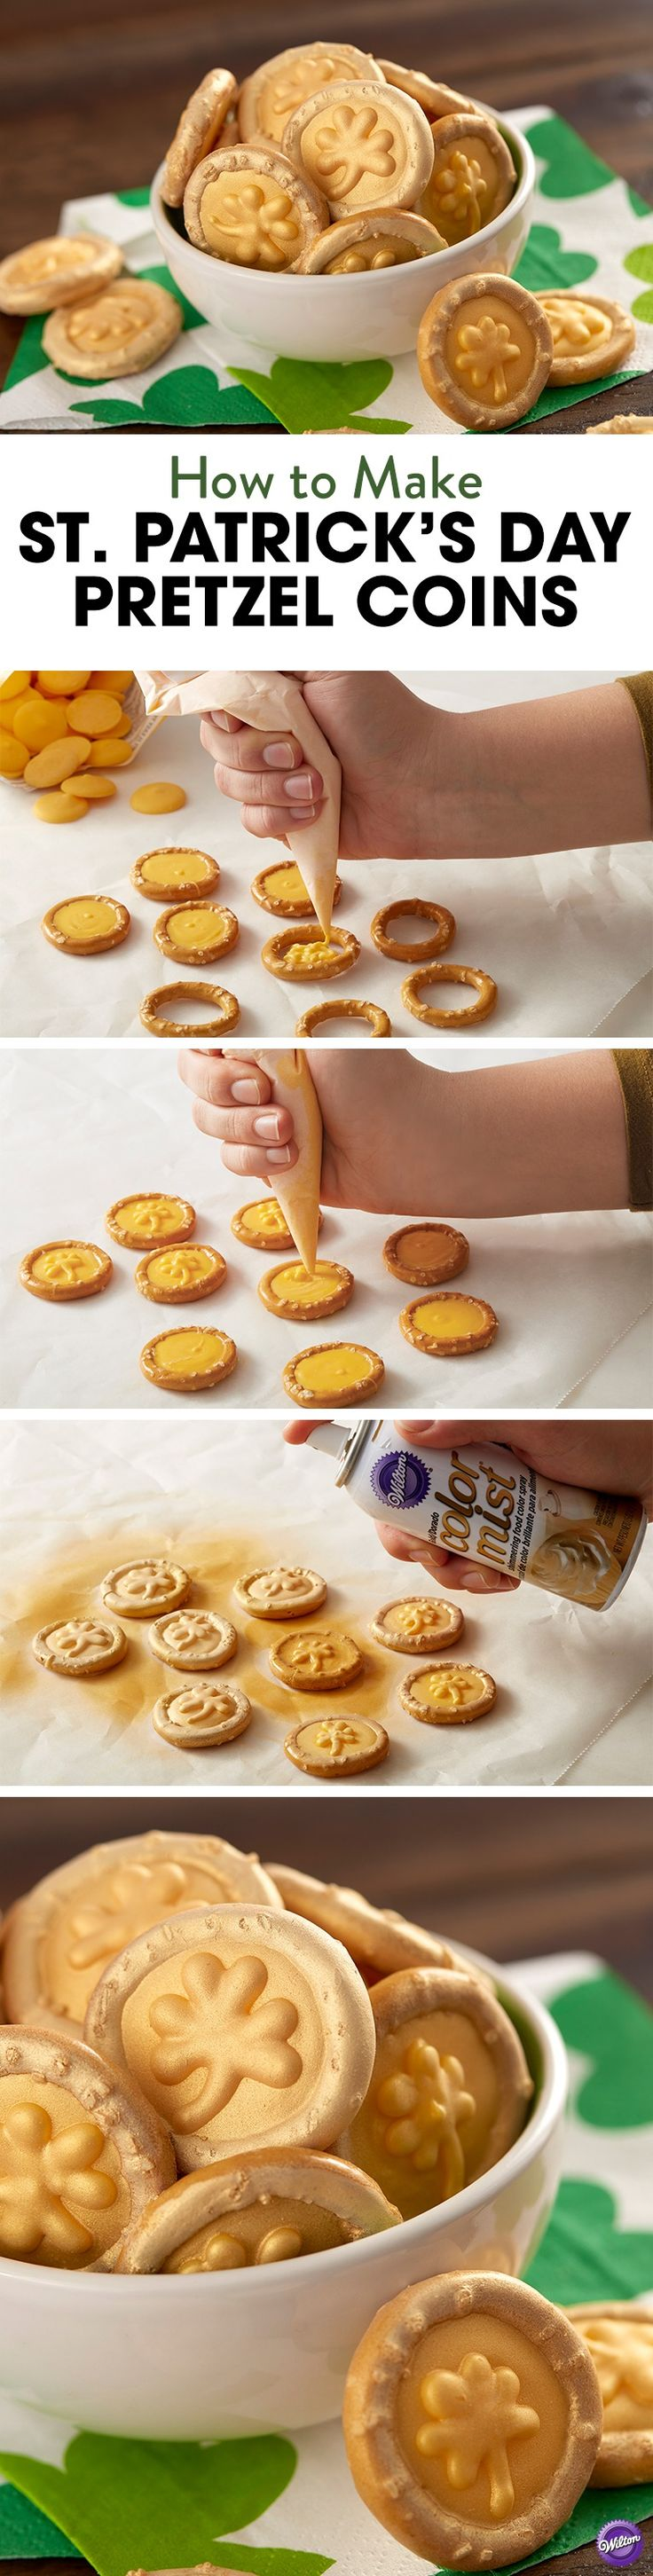 How to Make St. Patrick's Day Pretzel Coins - No need to chase the end of a rainbow for a pot of gold. Just make your own! Fill round pretzels with melted Yellow Candy Melts. Pipe shamrock and spray with Gold Color Mist Food Spray. A great project for beginners, this St. Patrick's Day snack is sure to bring you good luck and good fortune!